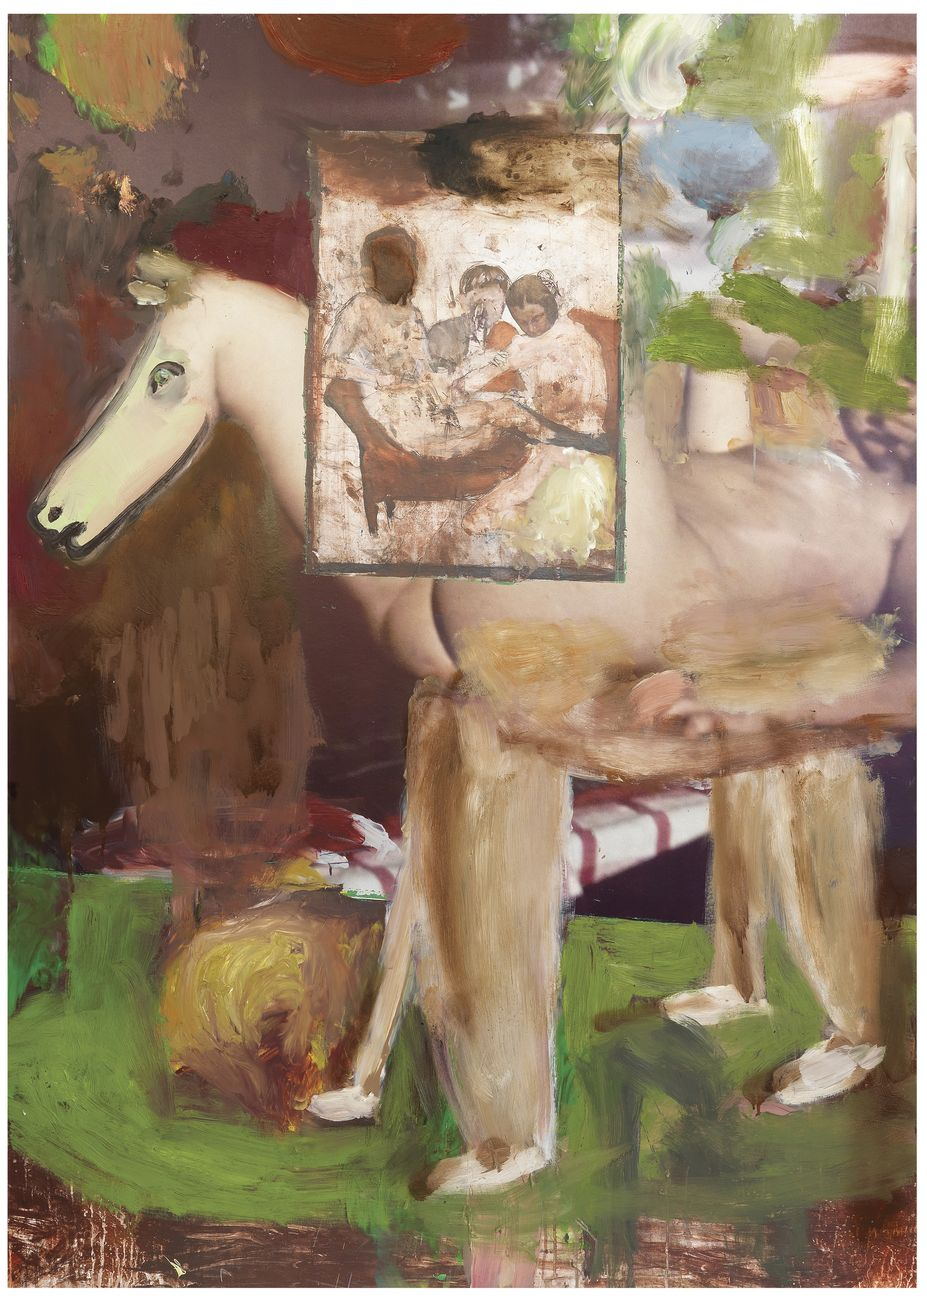 Michele Bubacco, Still life with Trojan horse in the room on fire, 2018, oil on printed paper mounted on aluminium, 140x100 cm. Photo Anna Lott Donadel